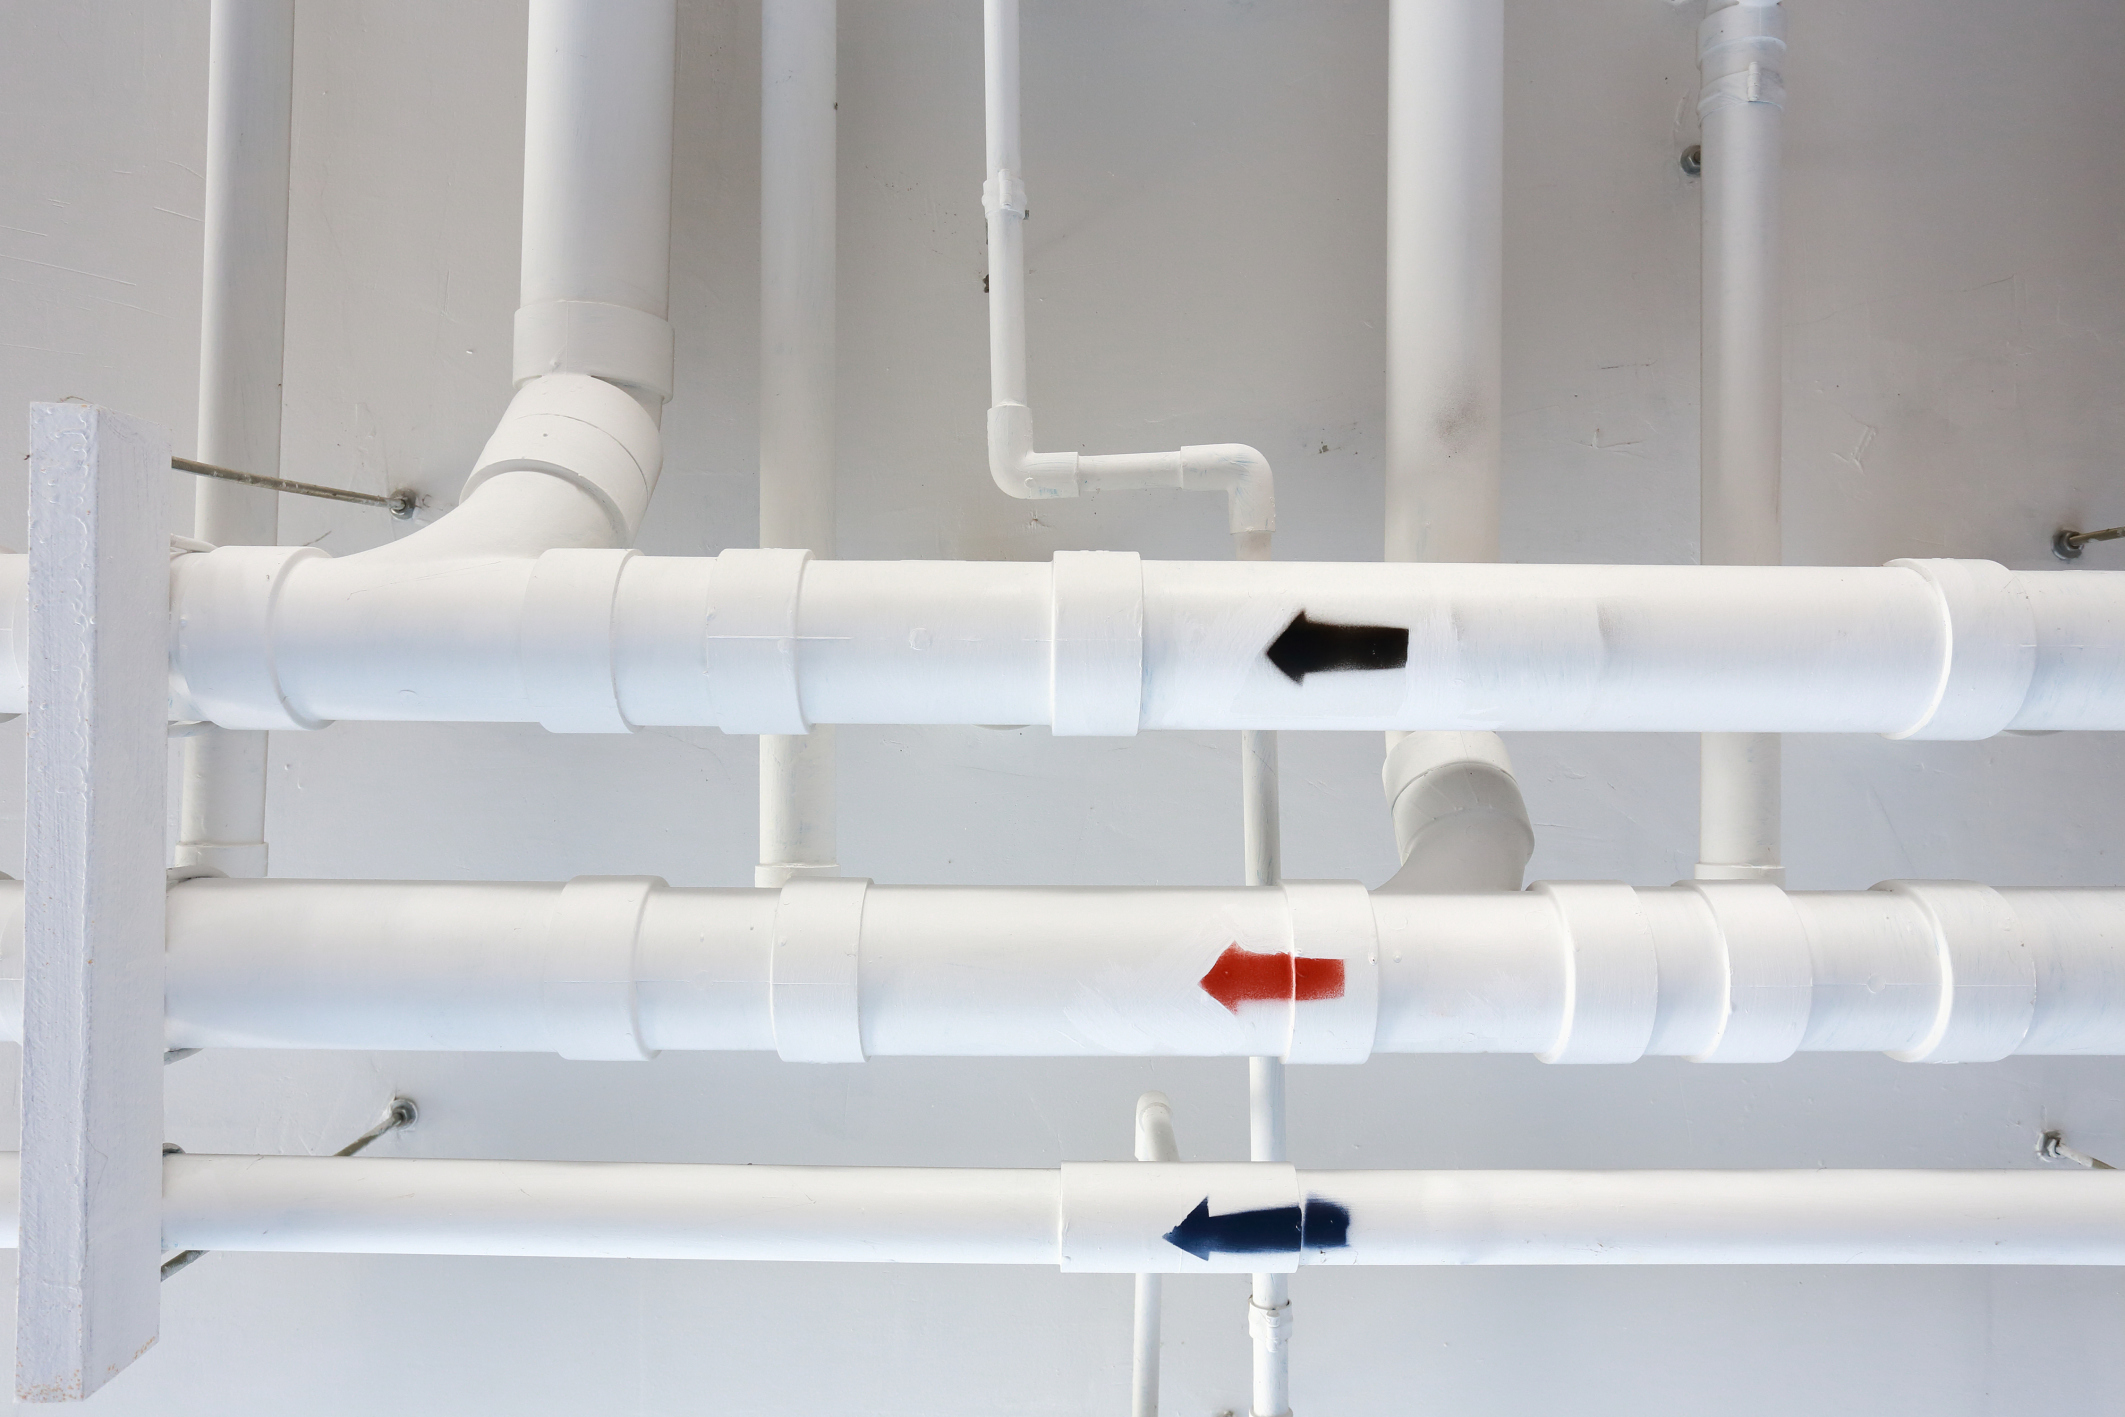 Indoor pipes